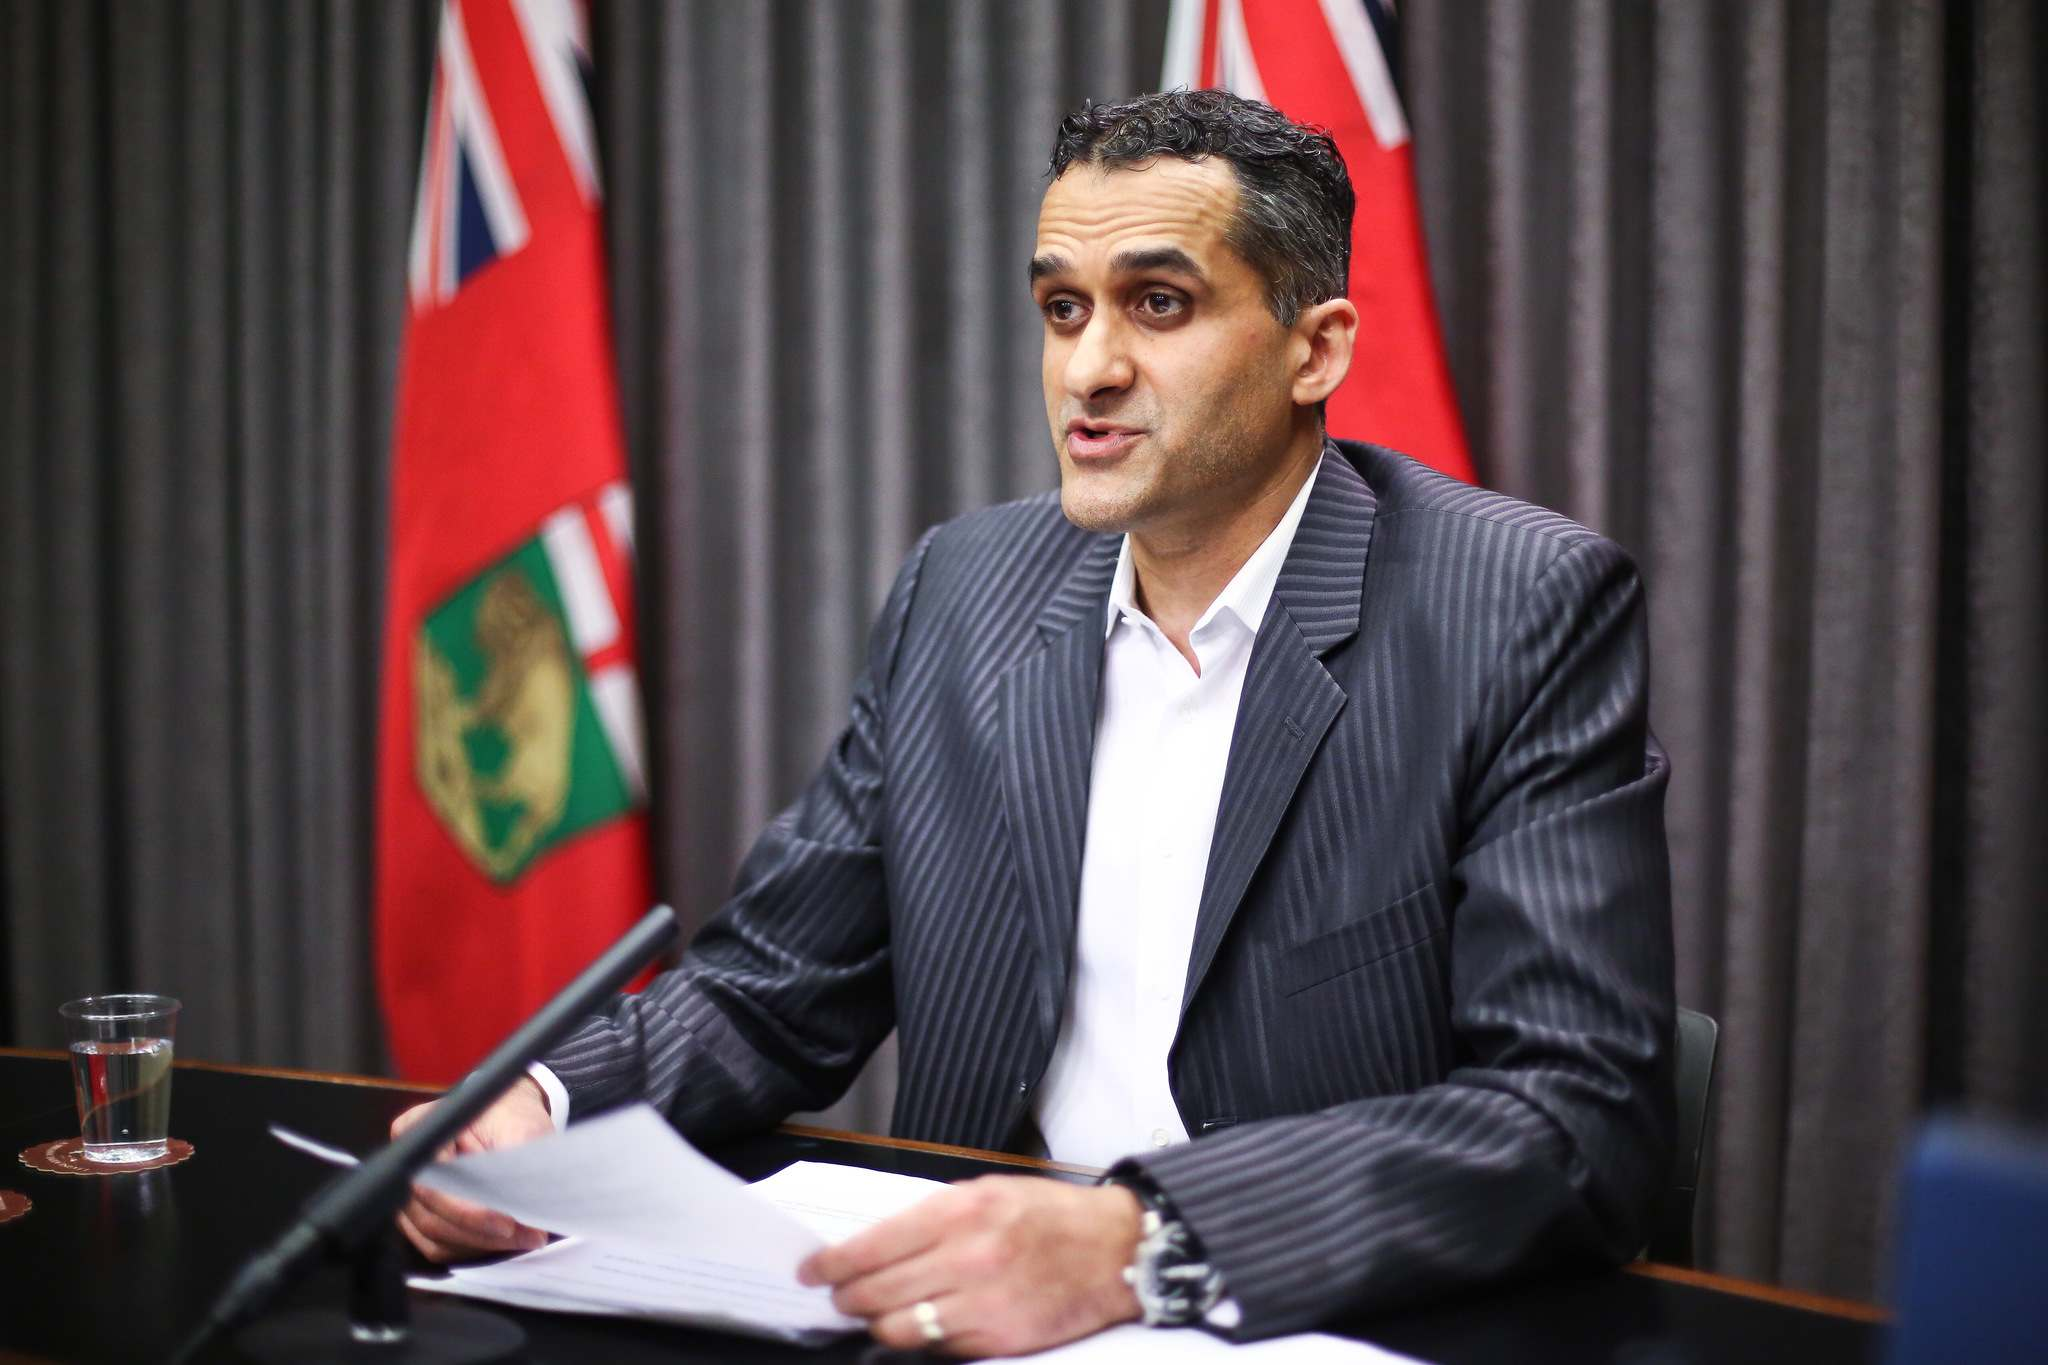 The province's acute care system was overwhelmed proportionally compared to the rest of the country, said Dr. Jazz Atwal, deputy chief provincial public health officer. (Mike Deal / Winnipeg Free Press files)